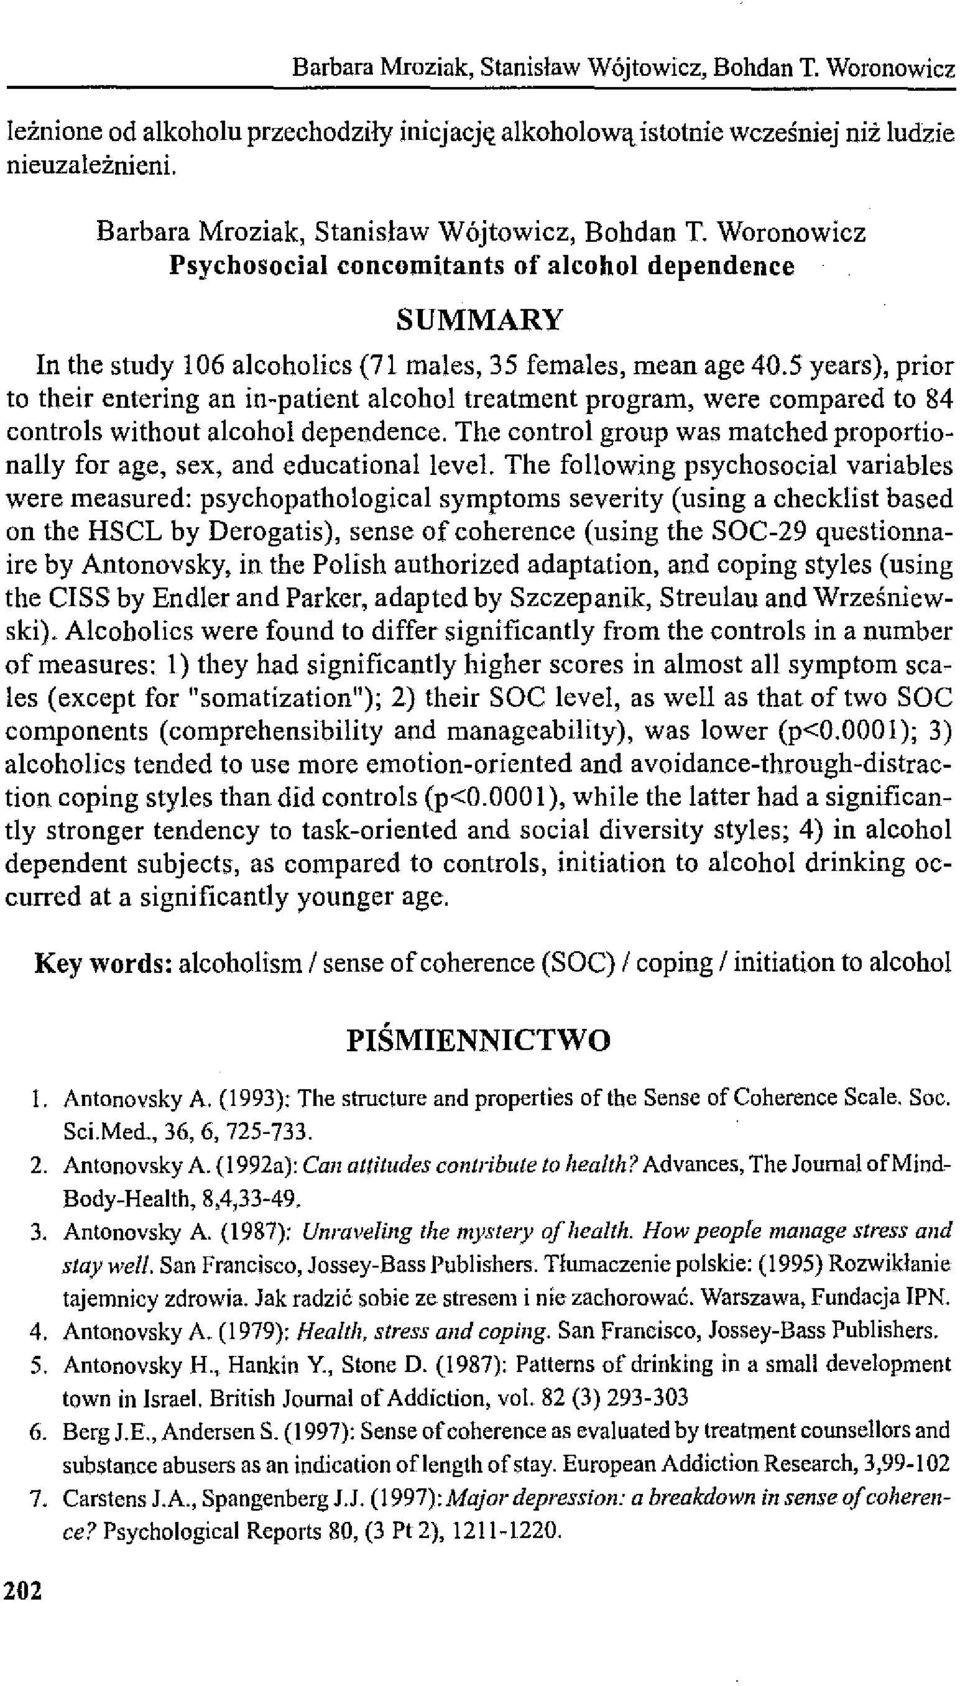 5 years), prior to their entering an in-patient a!cohol treatment program, were compared to 84 controls without a!cohol dependence.